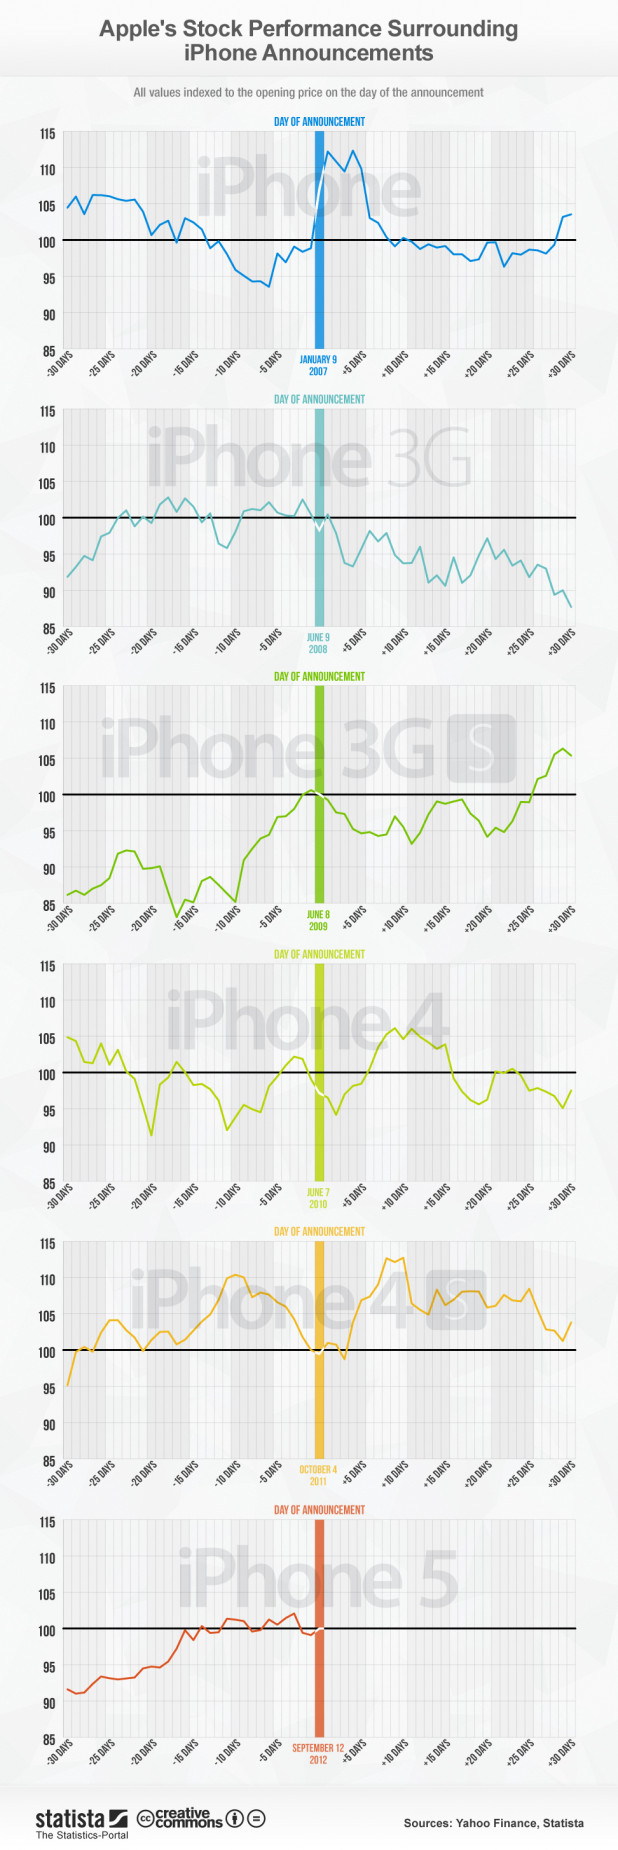 How iPhone Announcements Affect Apple Stock